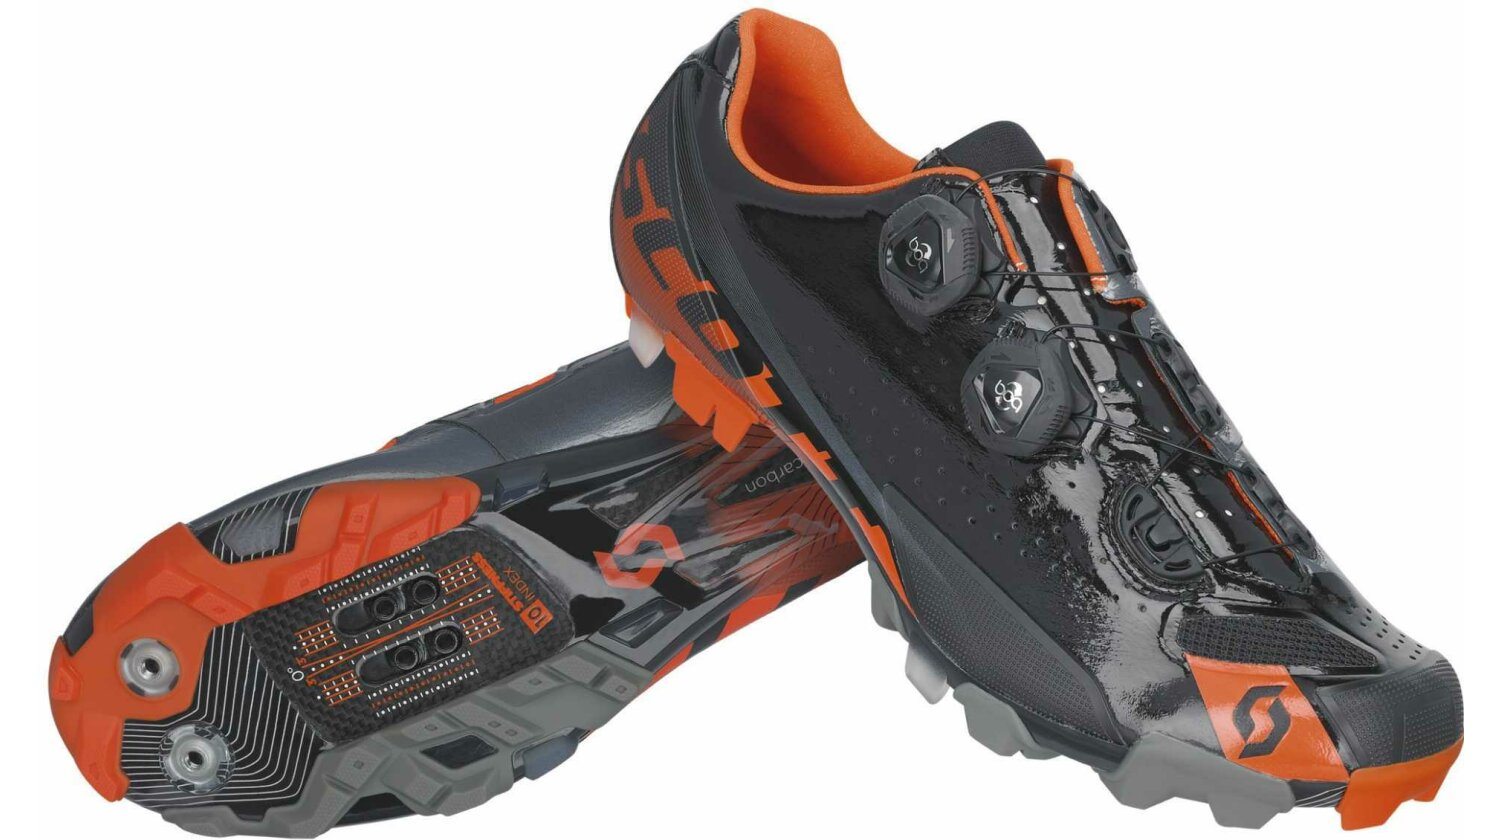 Scott MTB Premium Schuh black/orange gloss 38